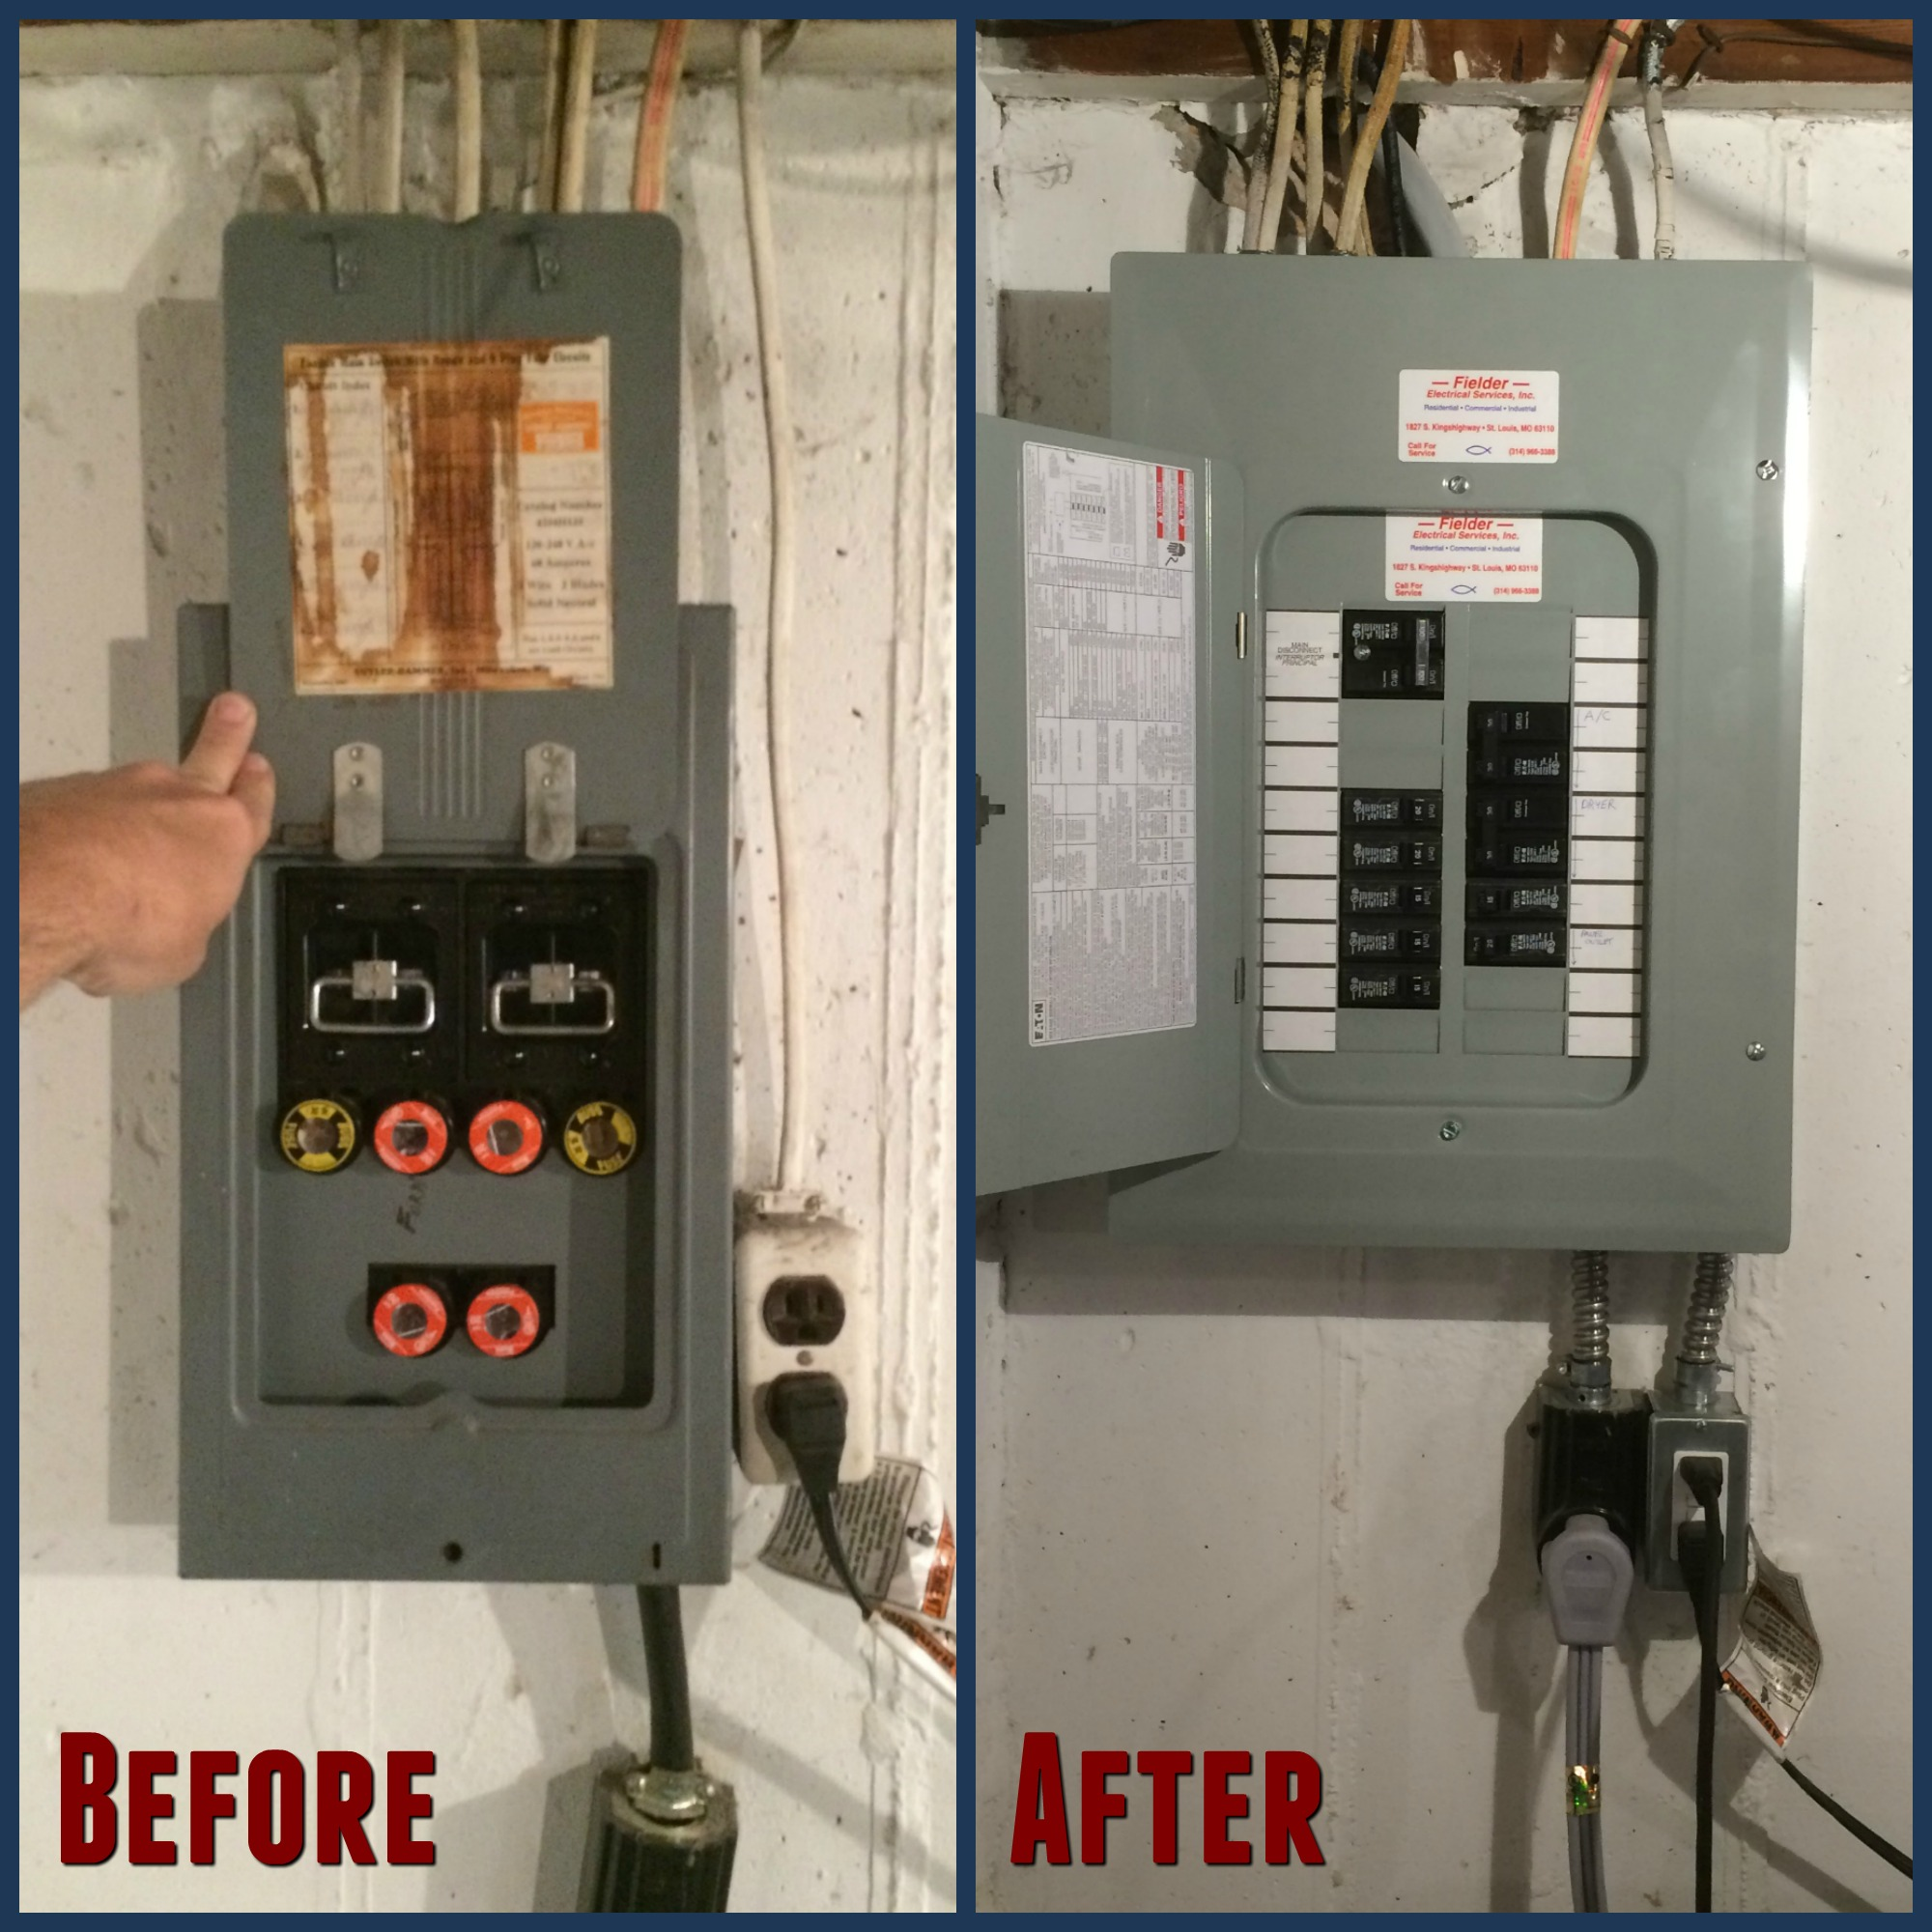 Fuse box replaced with electrical panel replace fuse box with breaker box fuses for circuit panel \u2022 wiring replacing fuse box with circuit breaker cost at crackthecode.co